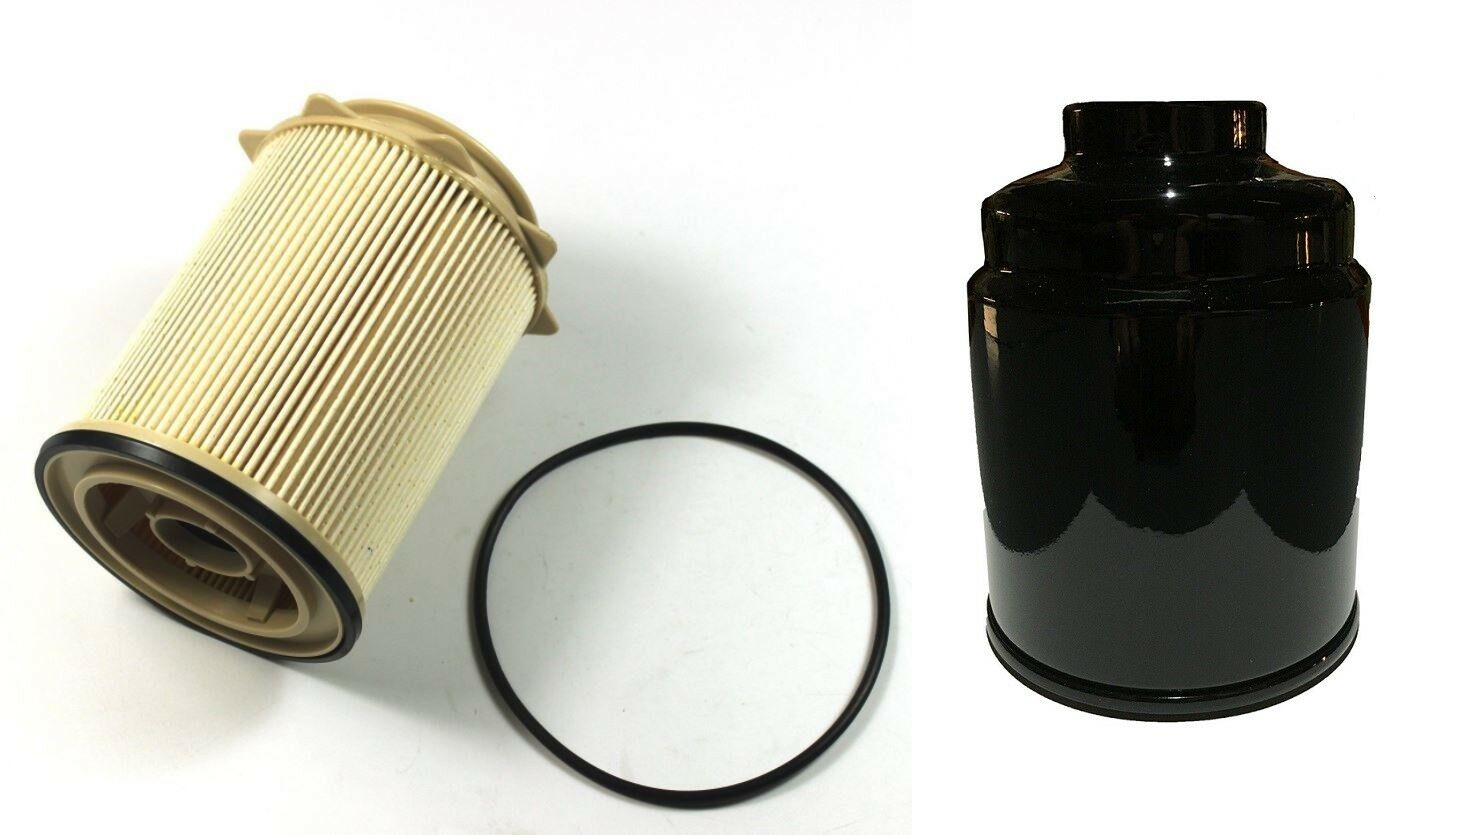 Dodge 67l Cummins Fuel Filter Water Separator Set For 13 17 Ram 2001 Pt Cruiser 1 Of 1free Shipping